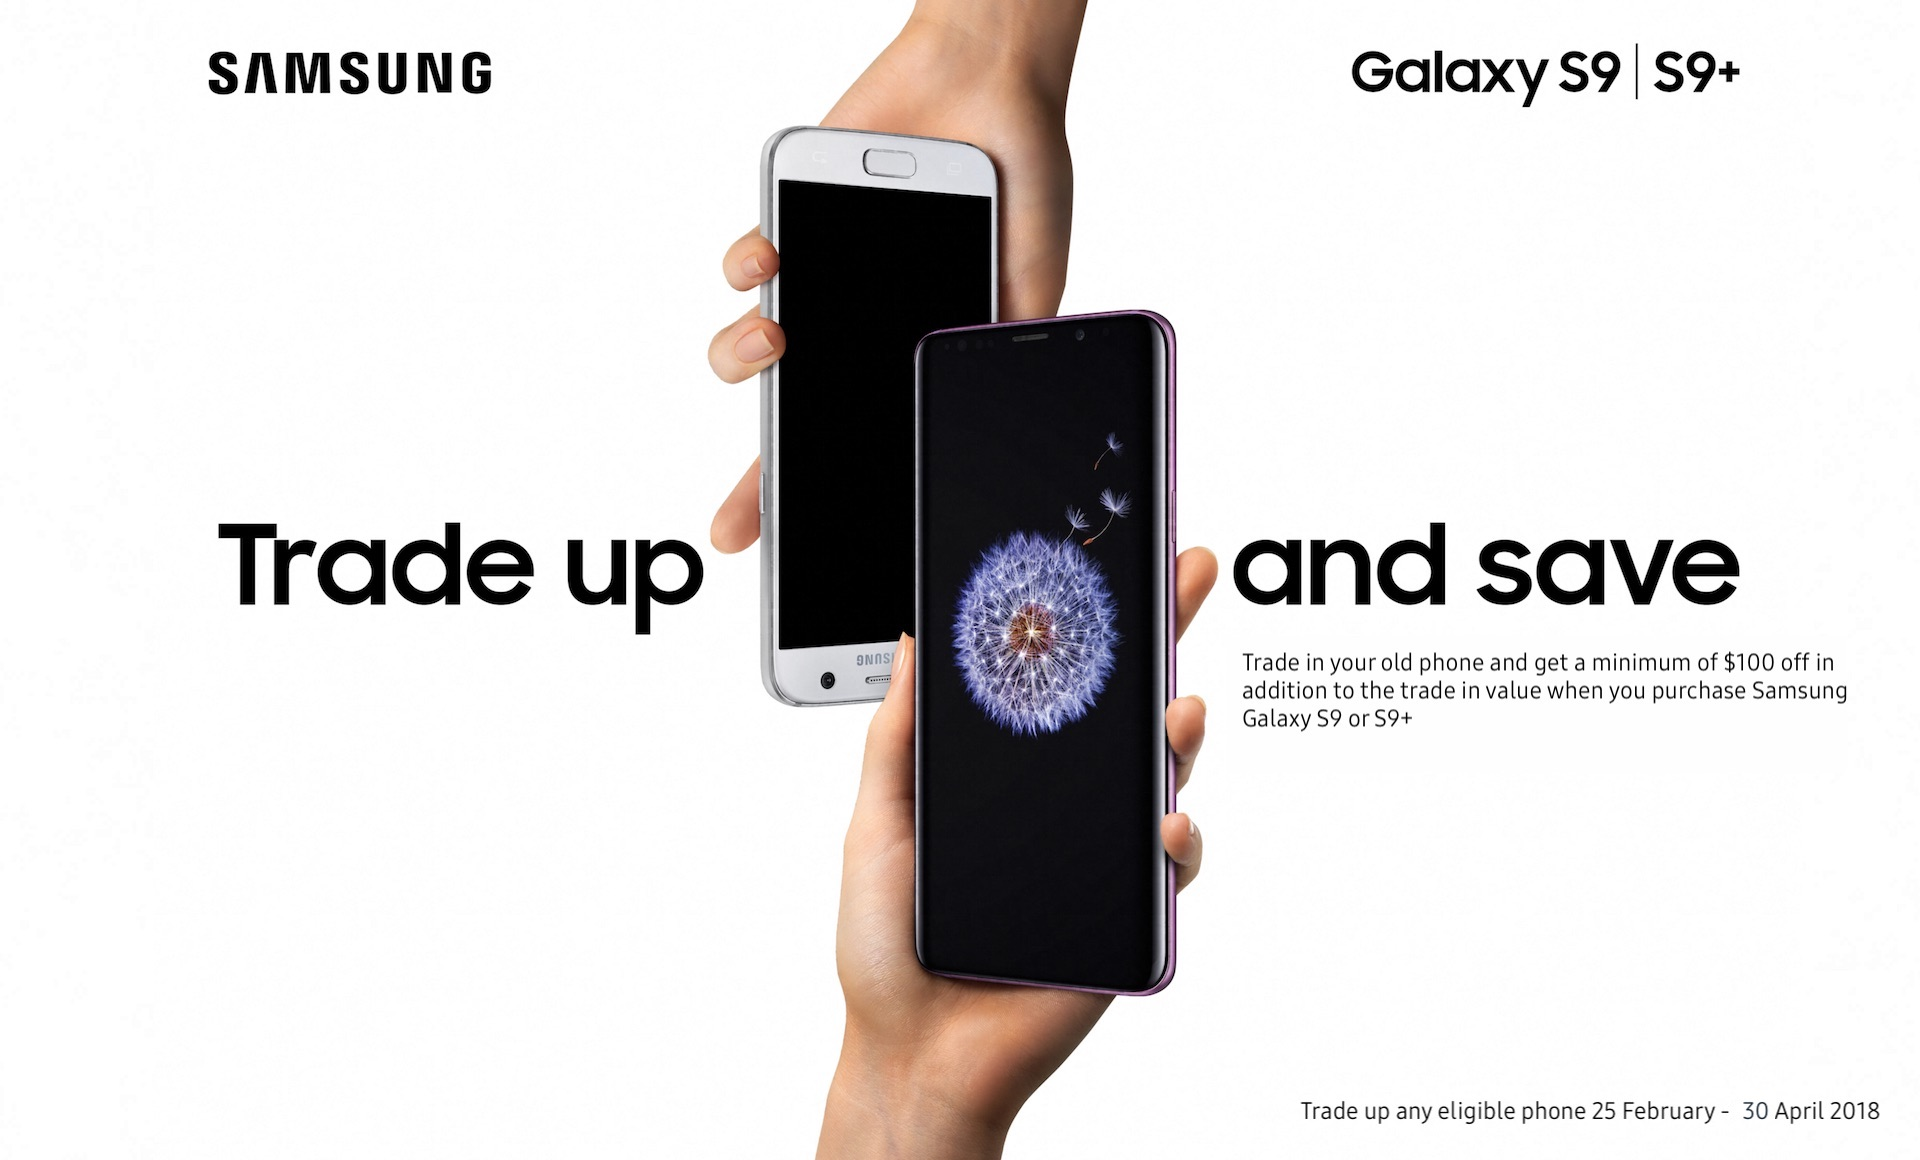 Trade and Save Galaxy S9/S9+